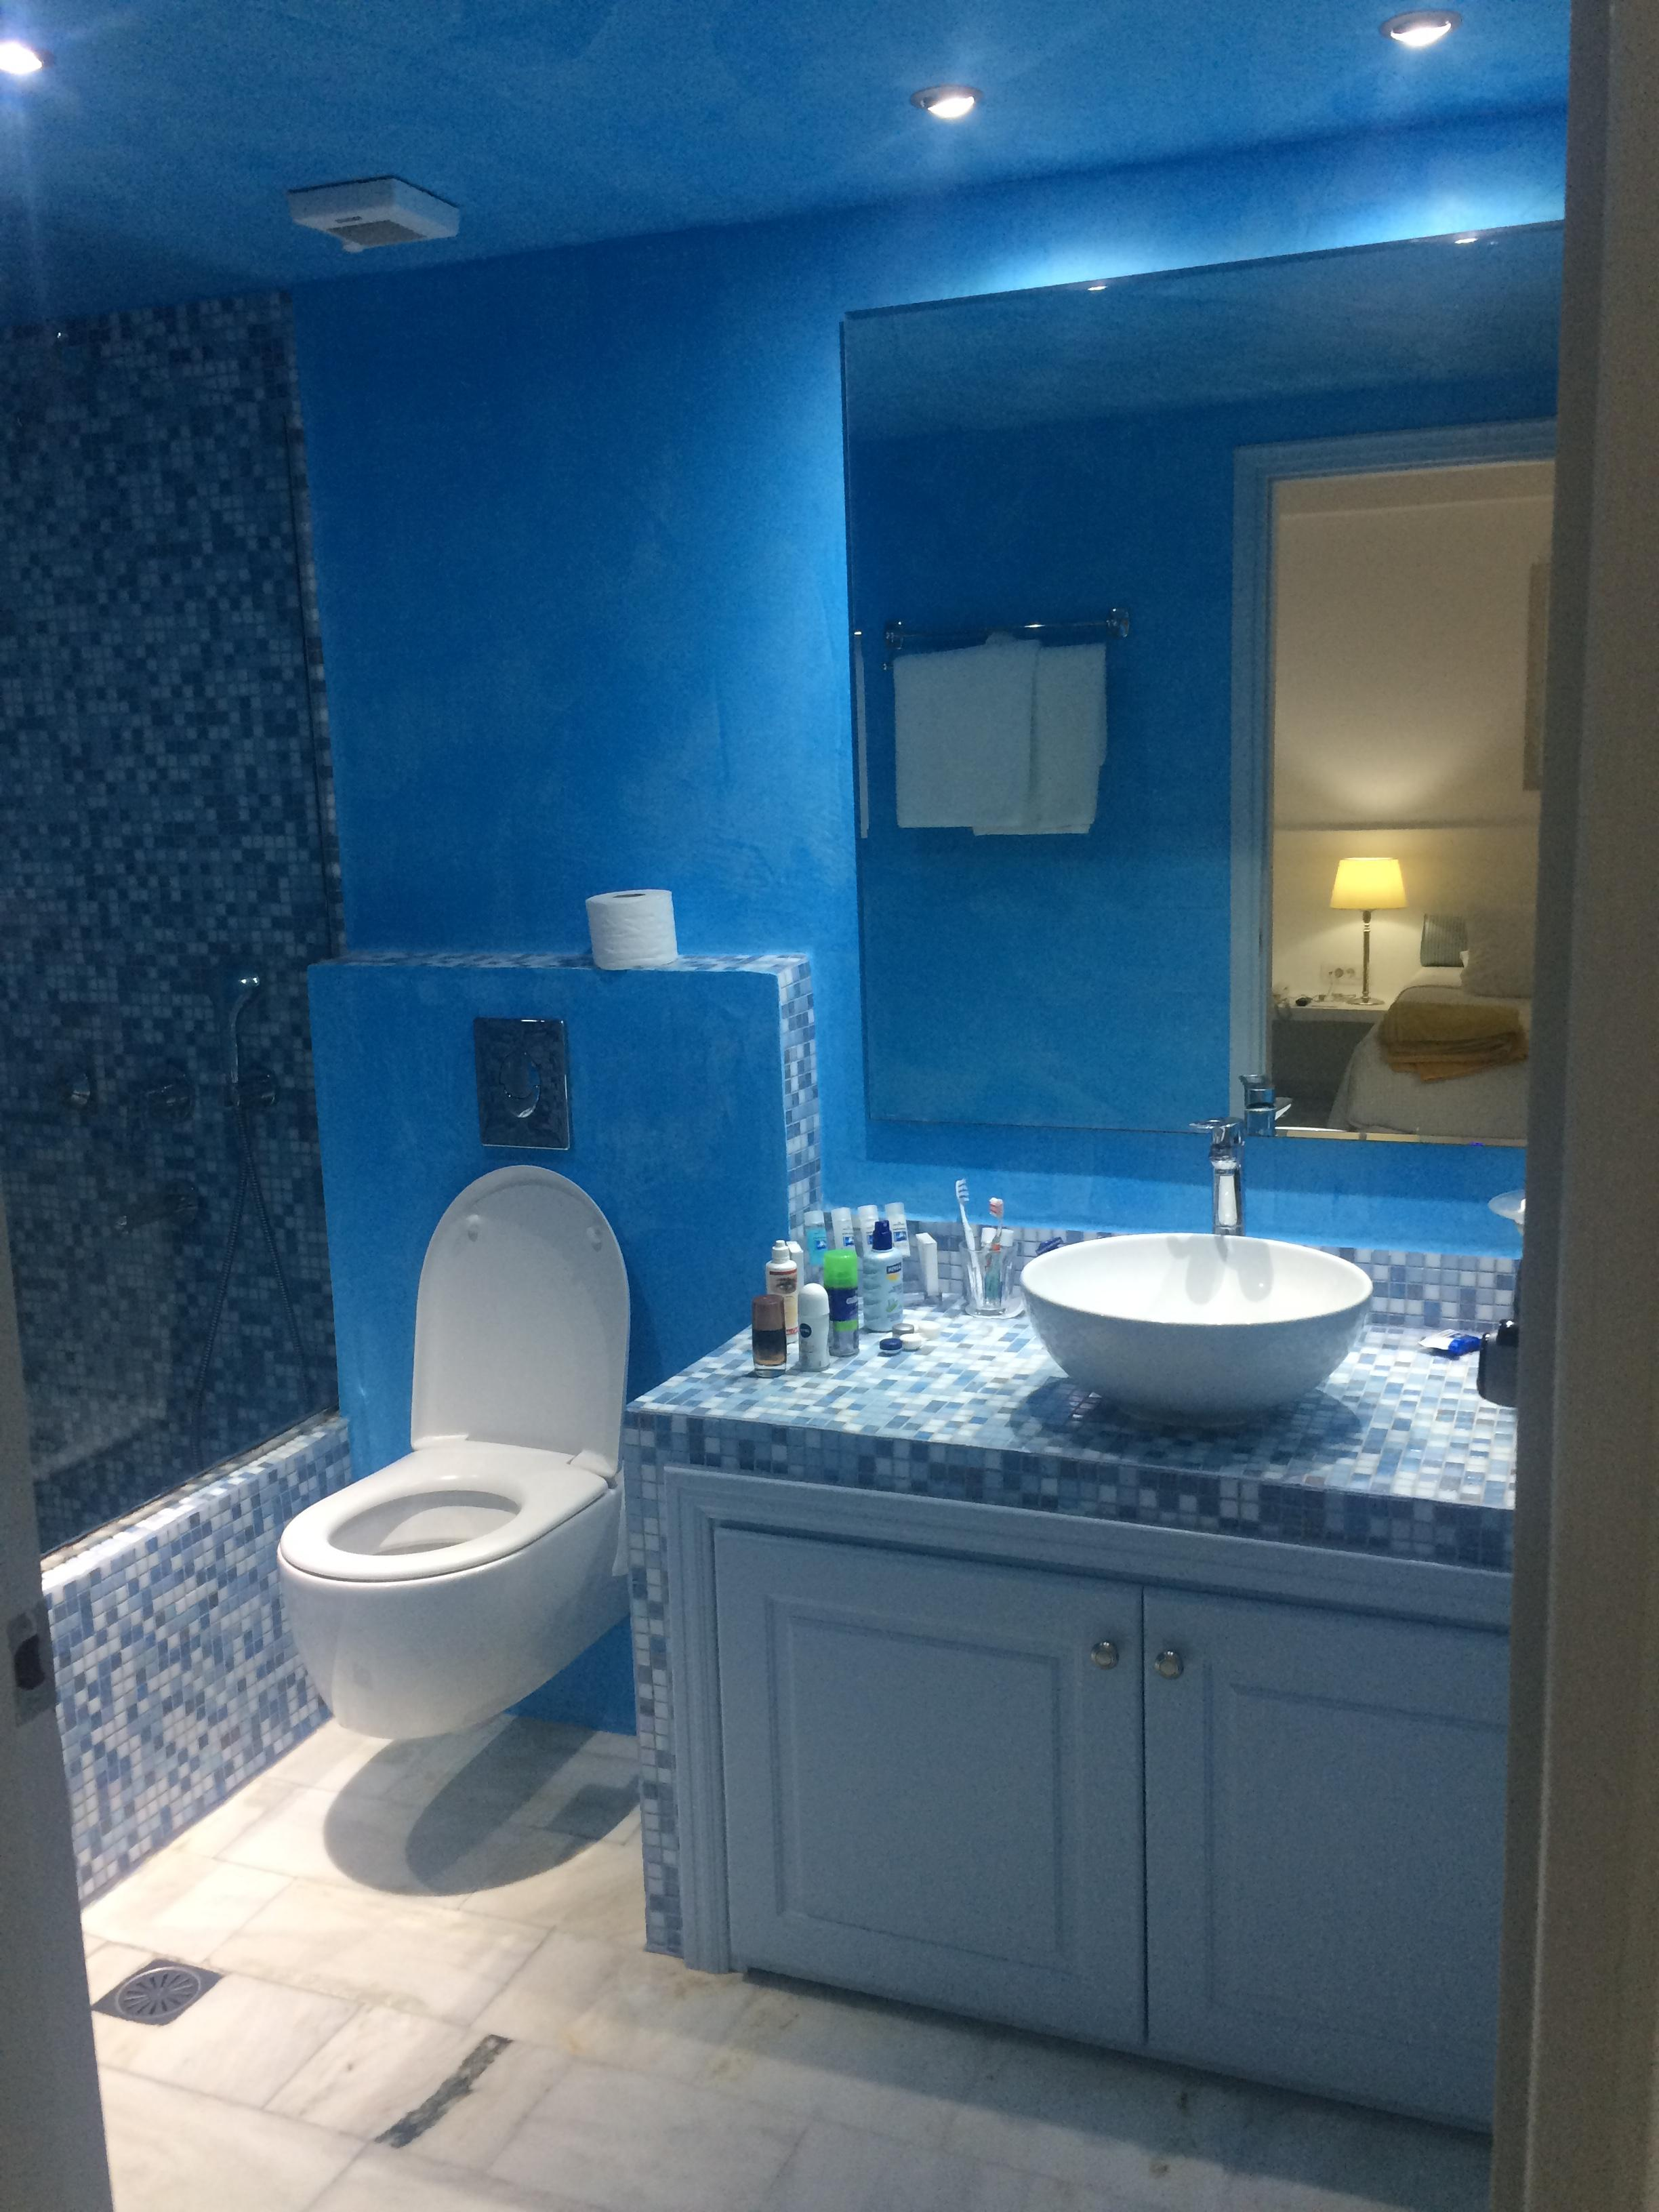 clean and bright bathroom